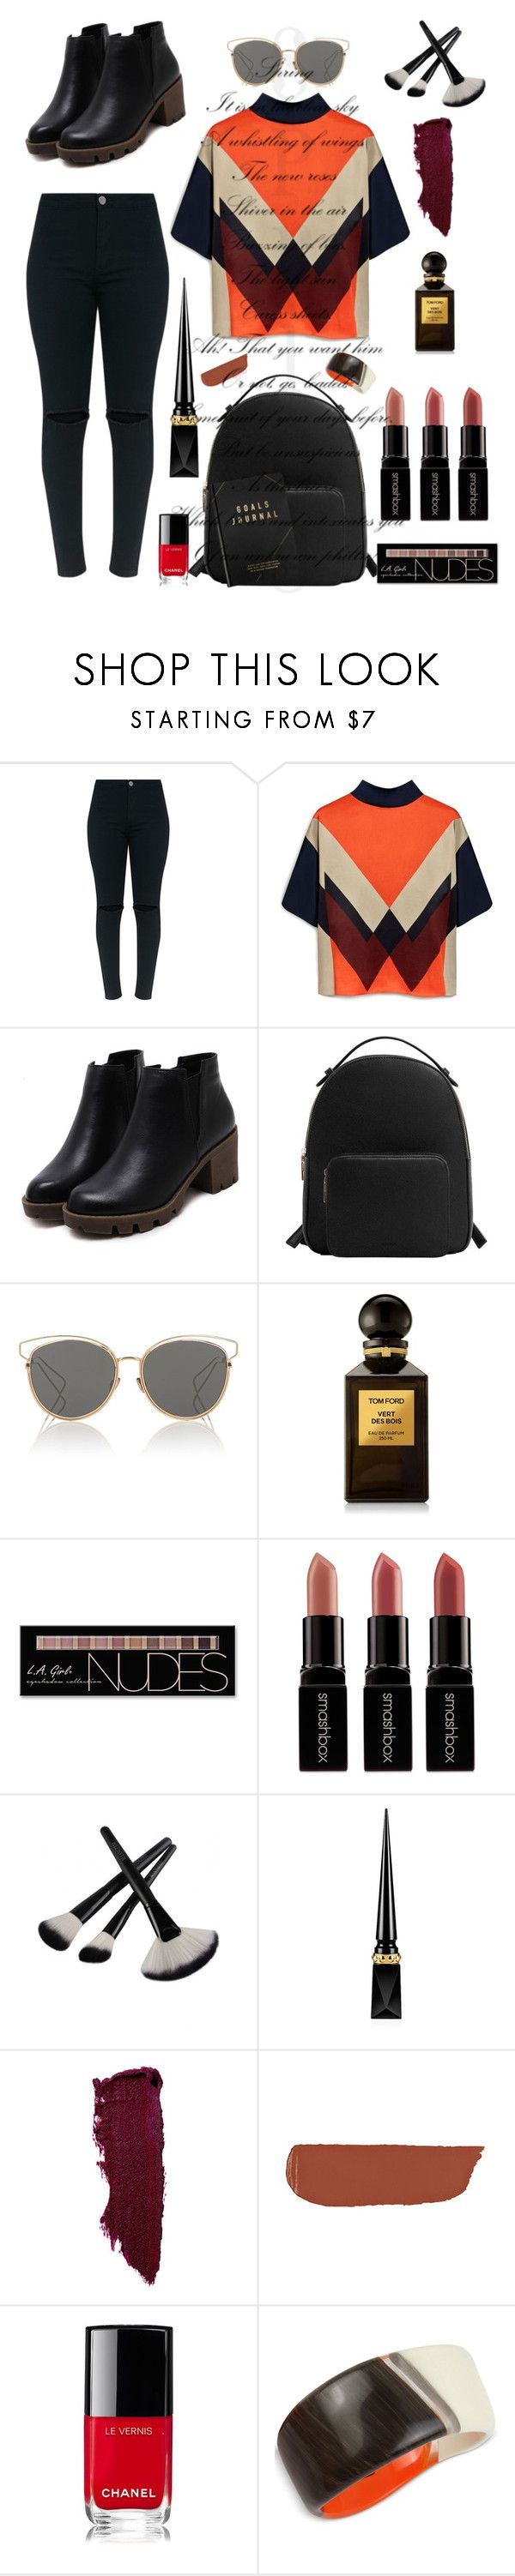 """Standout!"" by dmasterstylist ❤ liked on Polyvore featuring Mulberry, MANGO, Christian Dior, Tom Ford, Charlotte Russe, Smashbox, Christian Louboutin, Rossetto, Chanel and Robert Lee Morris"